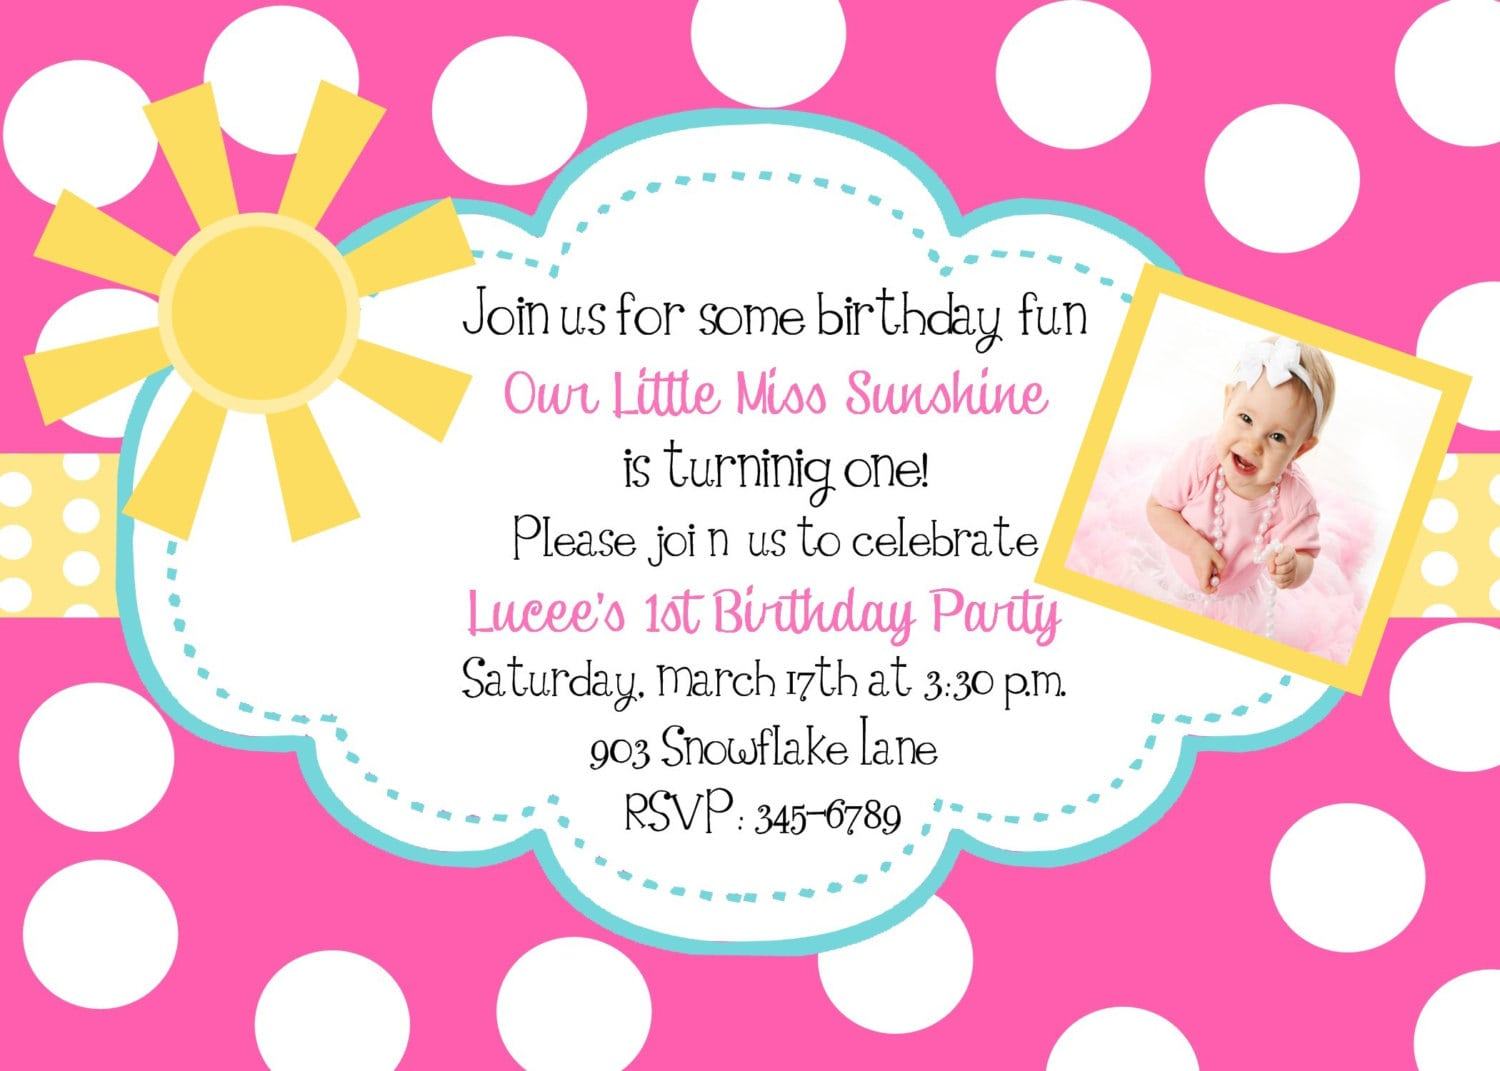 Bday Party Invitation Message